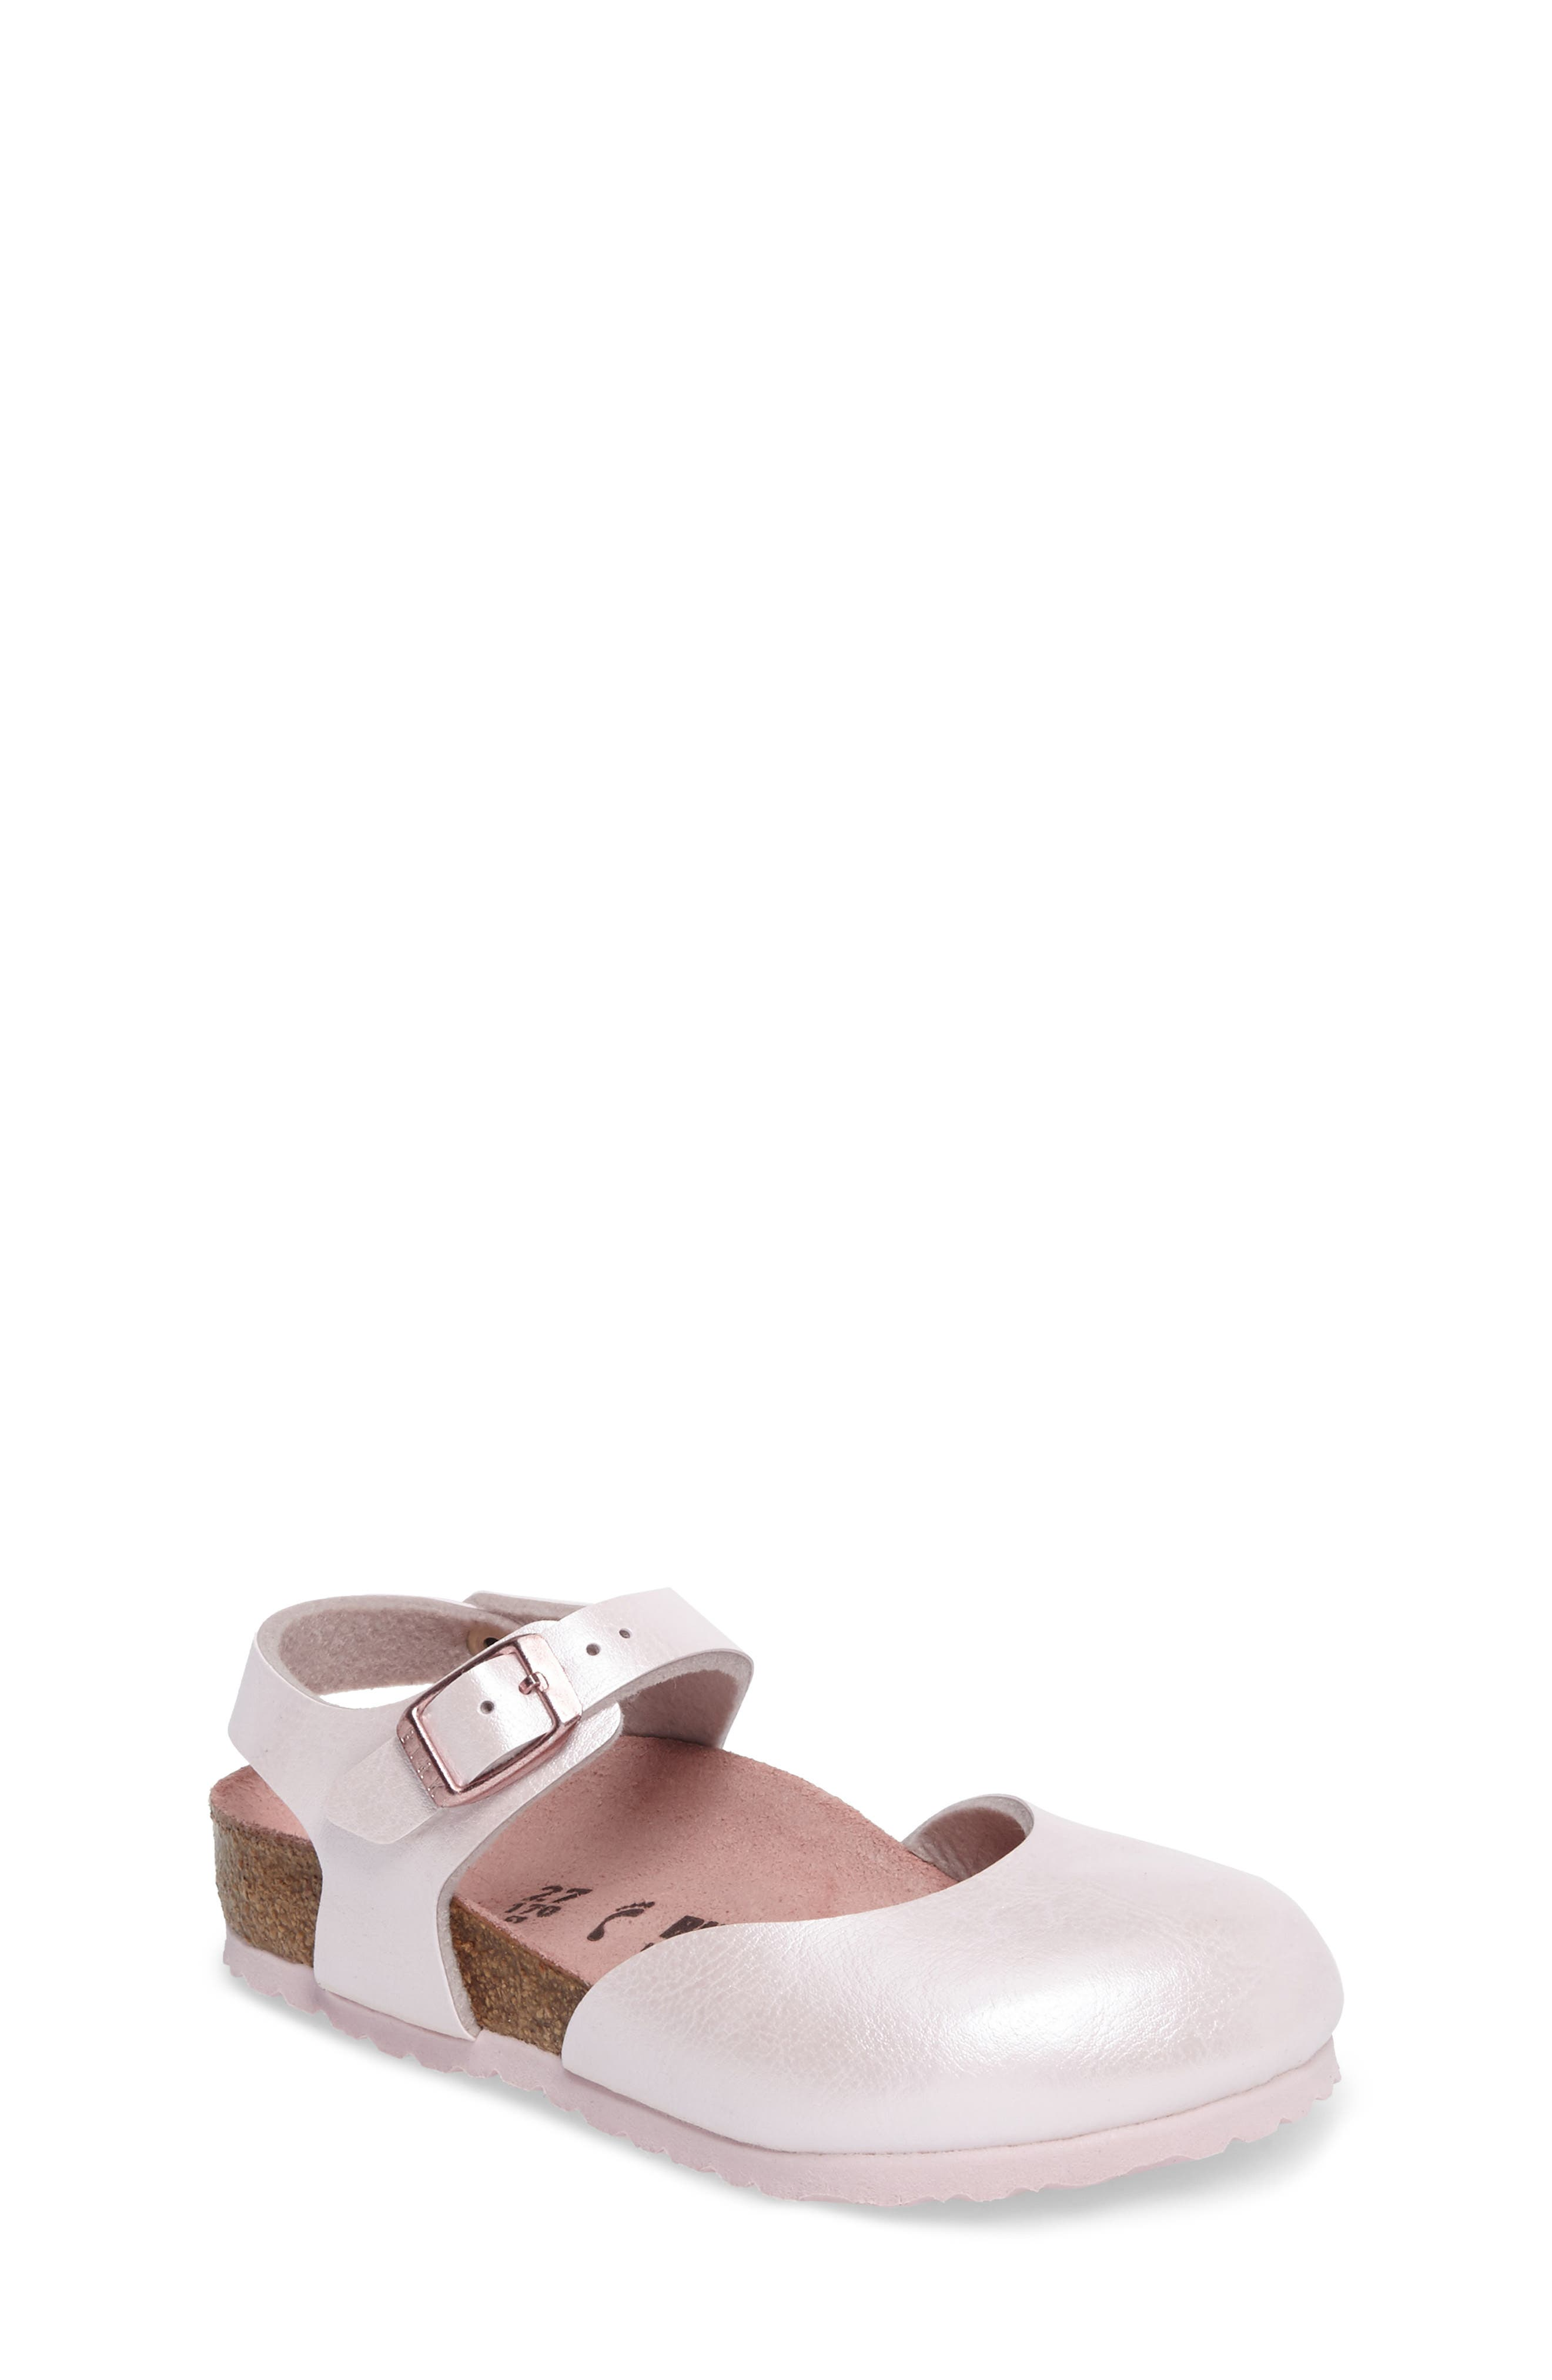 Anguilla Sandal,                         Main,                         color, Graceful Rose